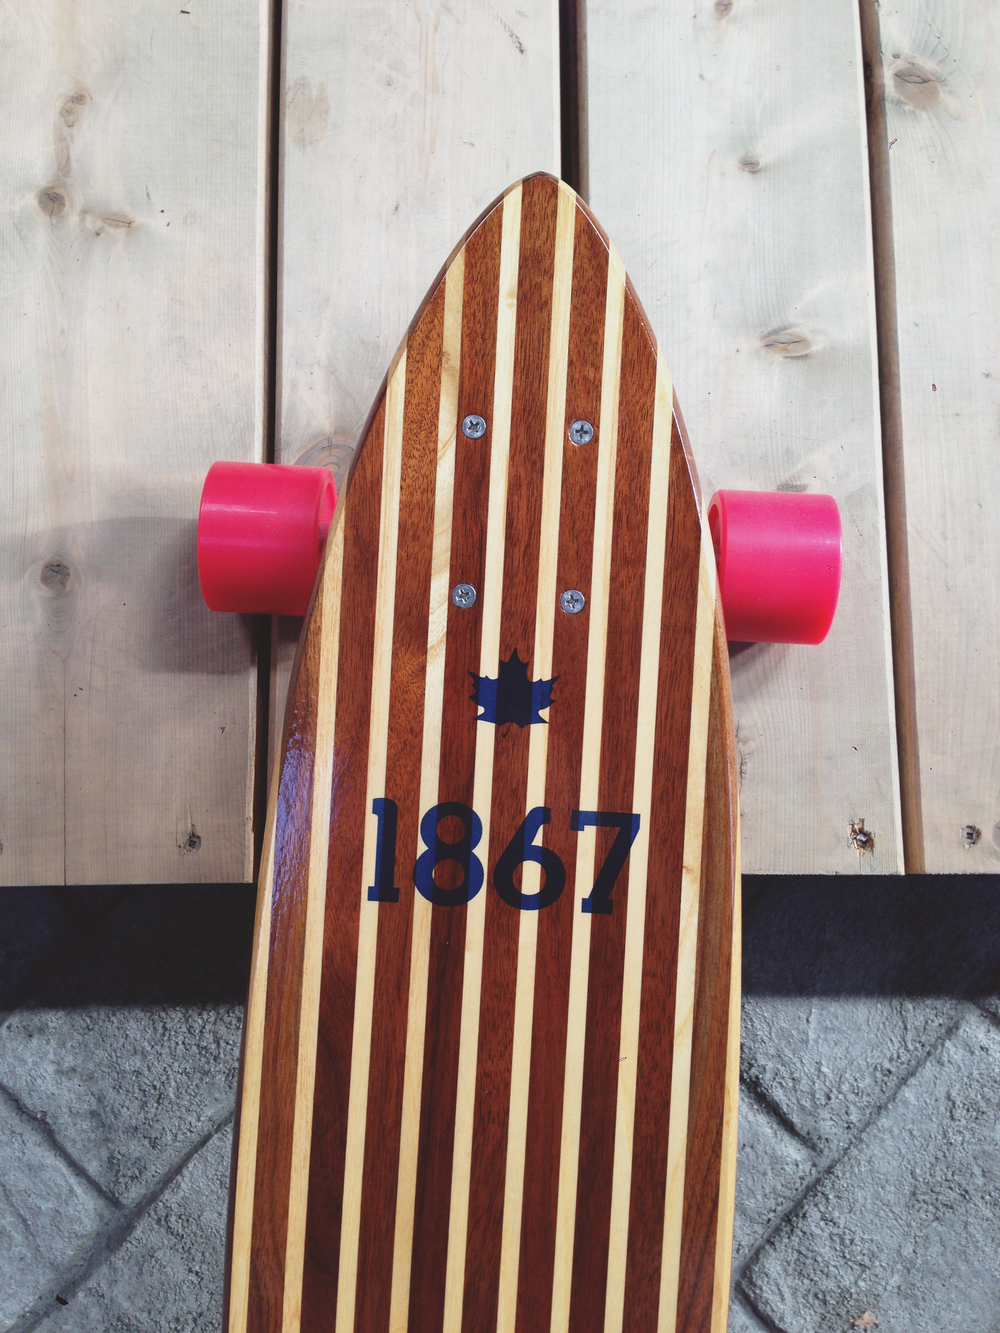 1867customlongboard